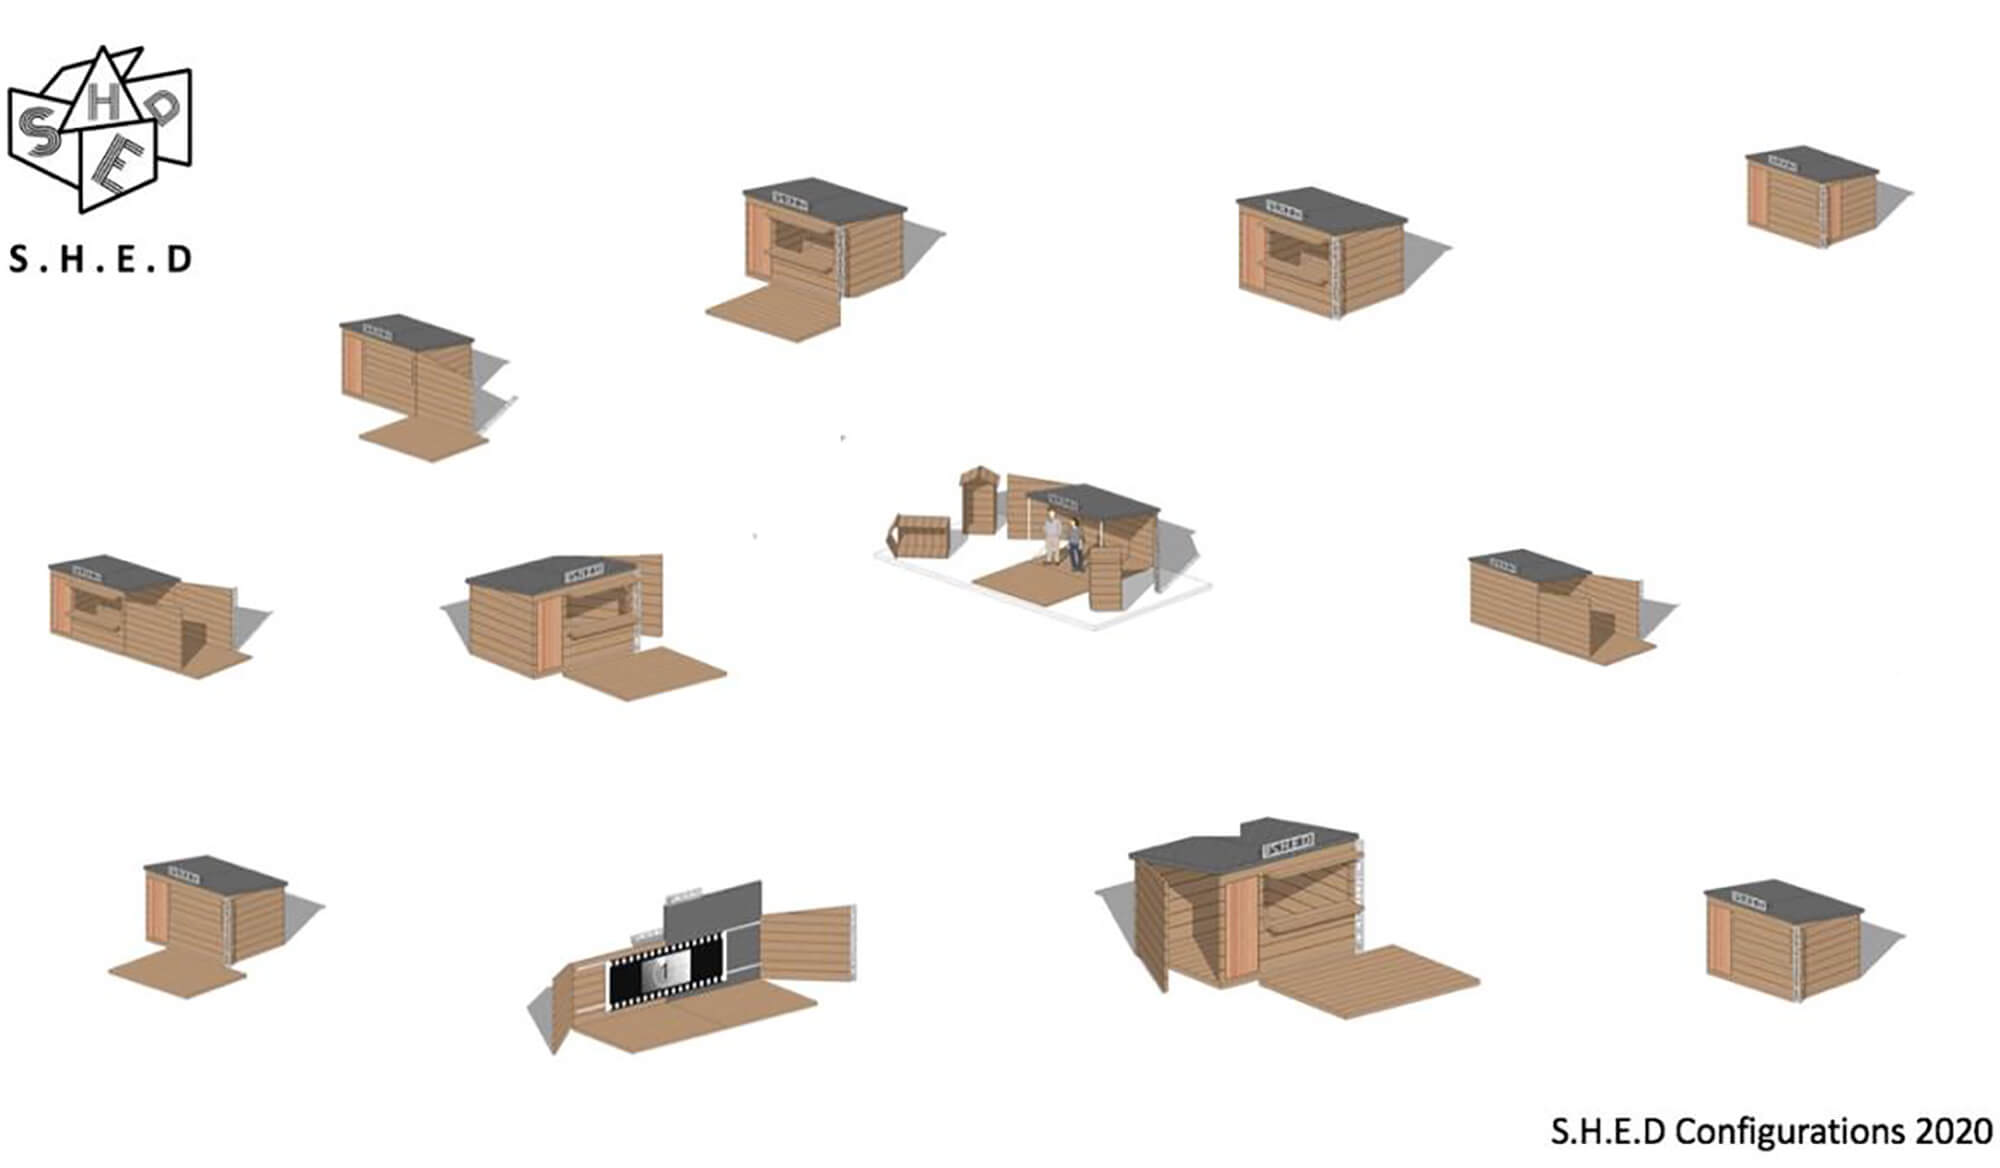 the 12 configurations of S.H.E.D, from simple shed to outdoor movie theatre